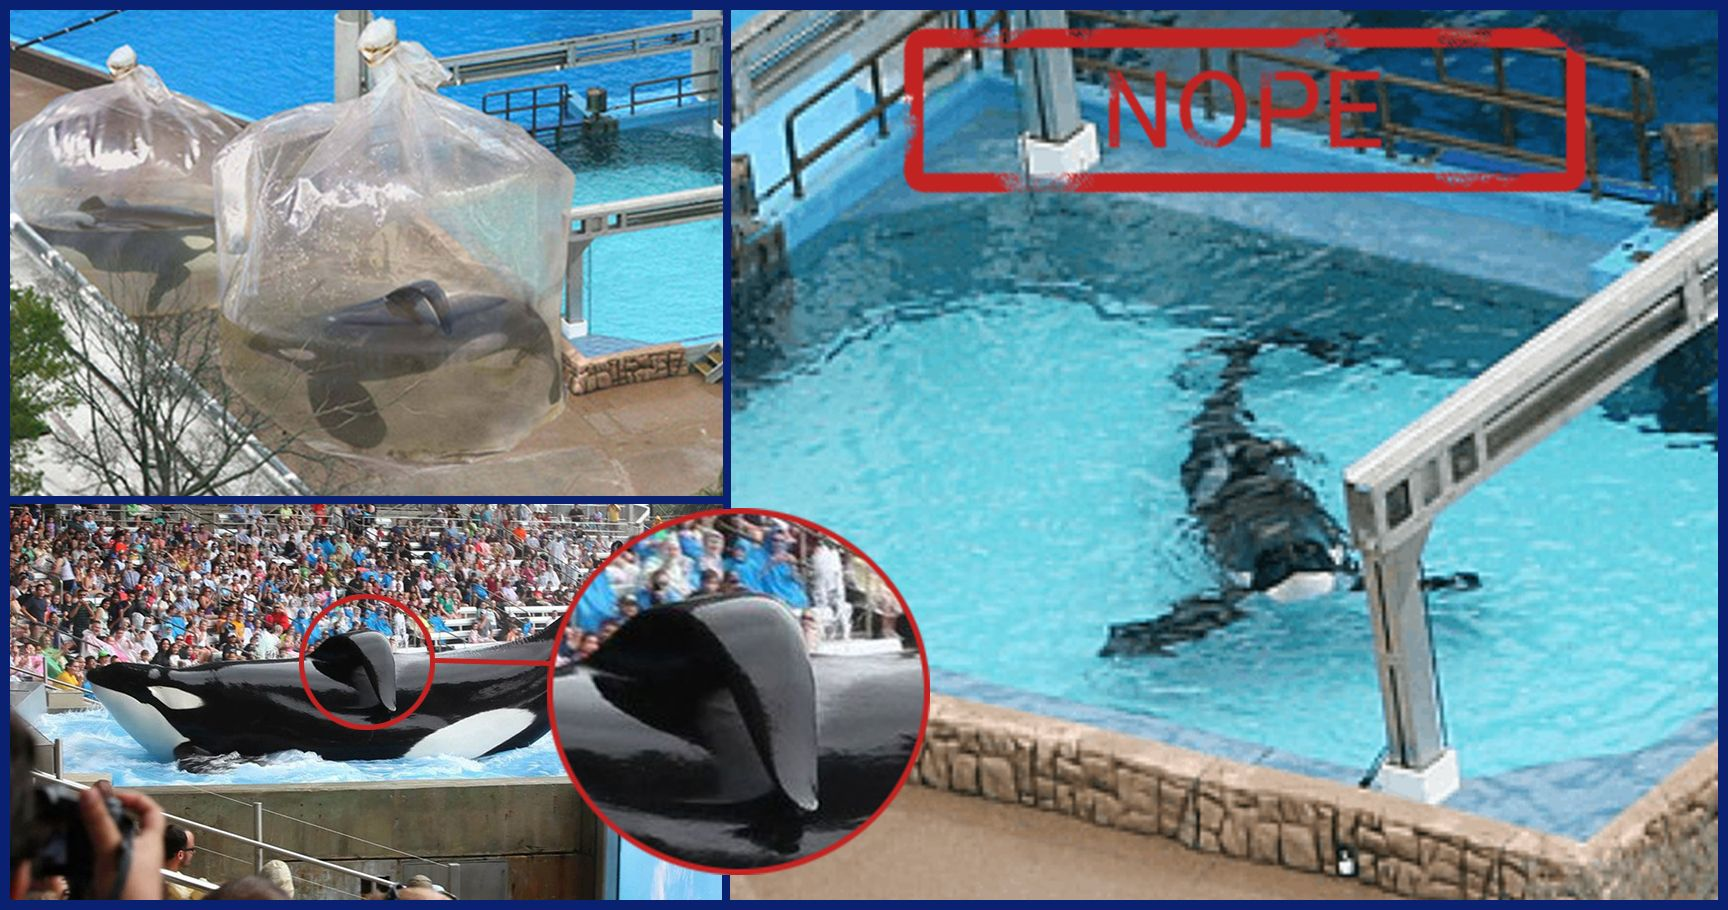 Outrageous Images That Prove Seaworld Should Be Shut Down